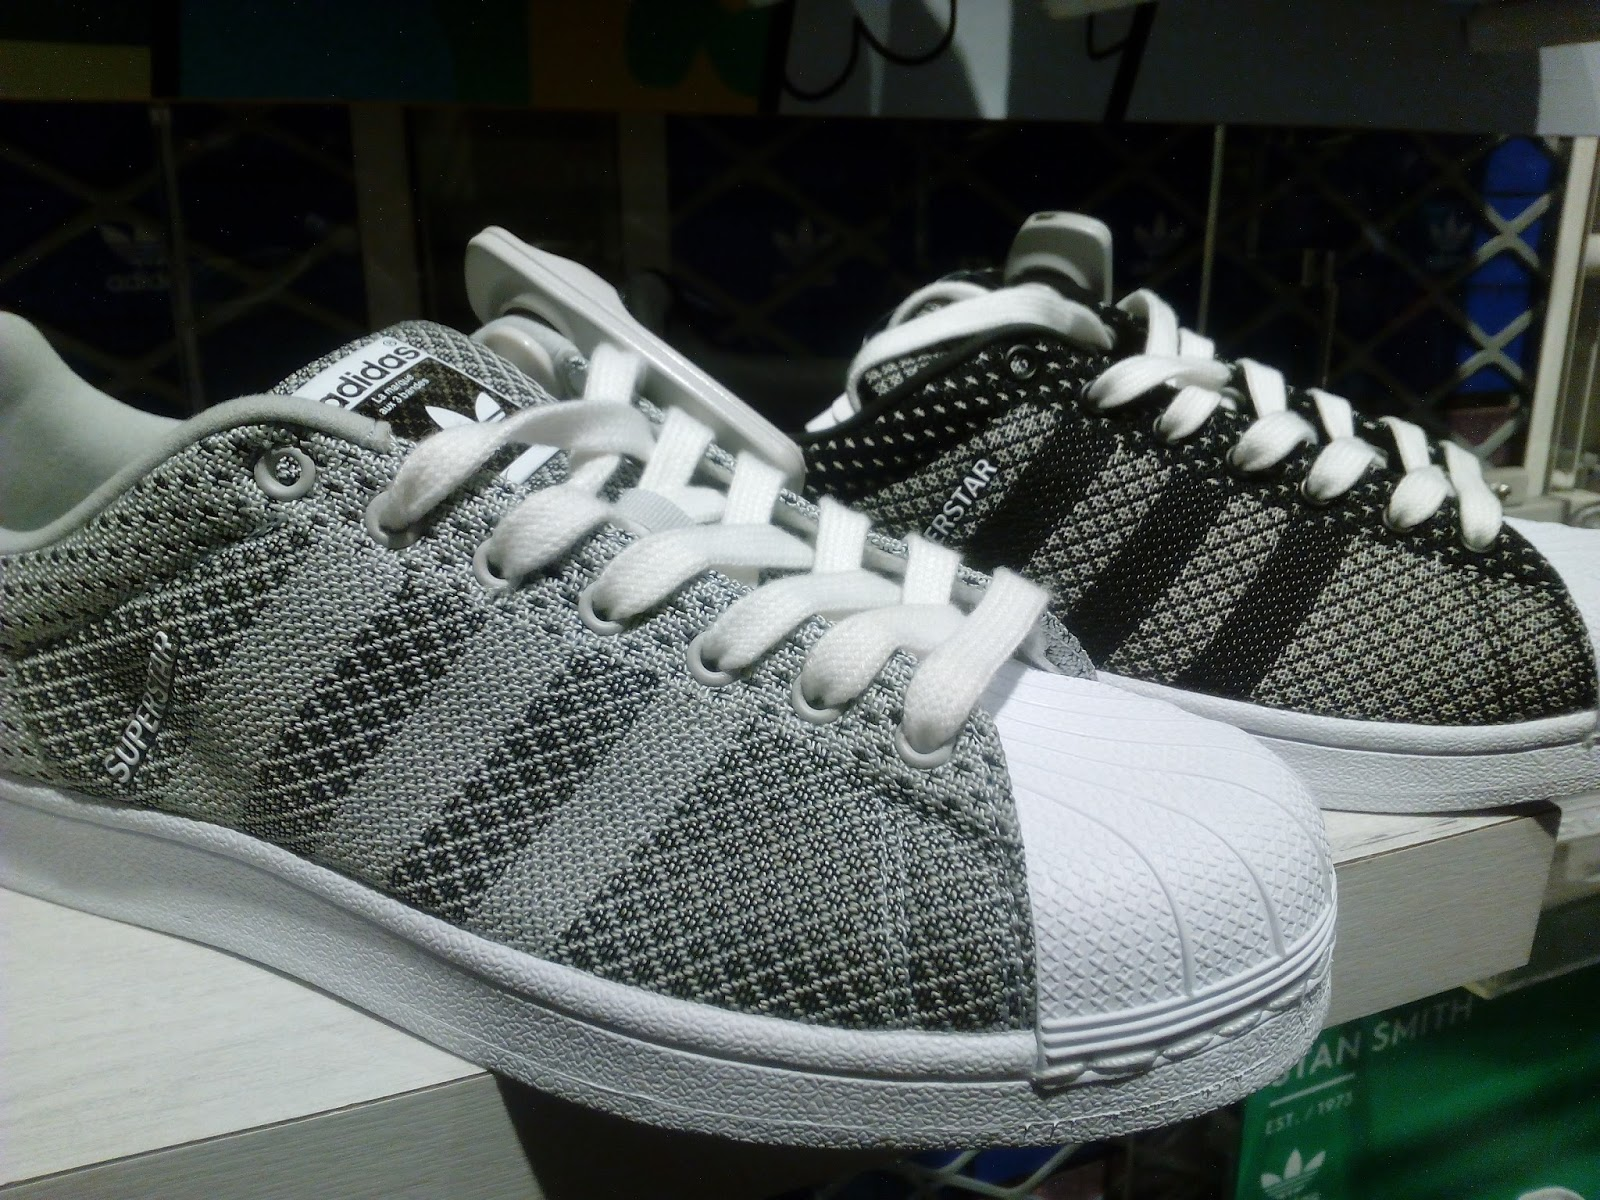 ab9f8d31aec9 Adidas Superstar Weave Pack